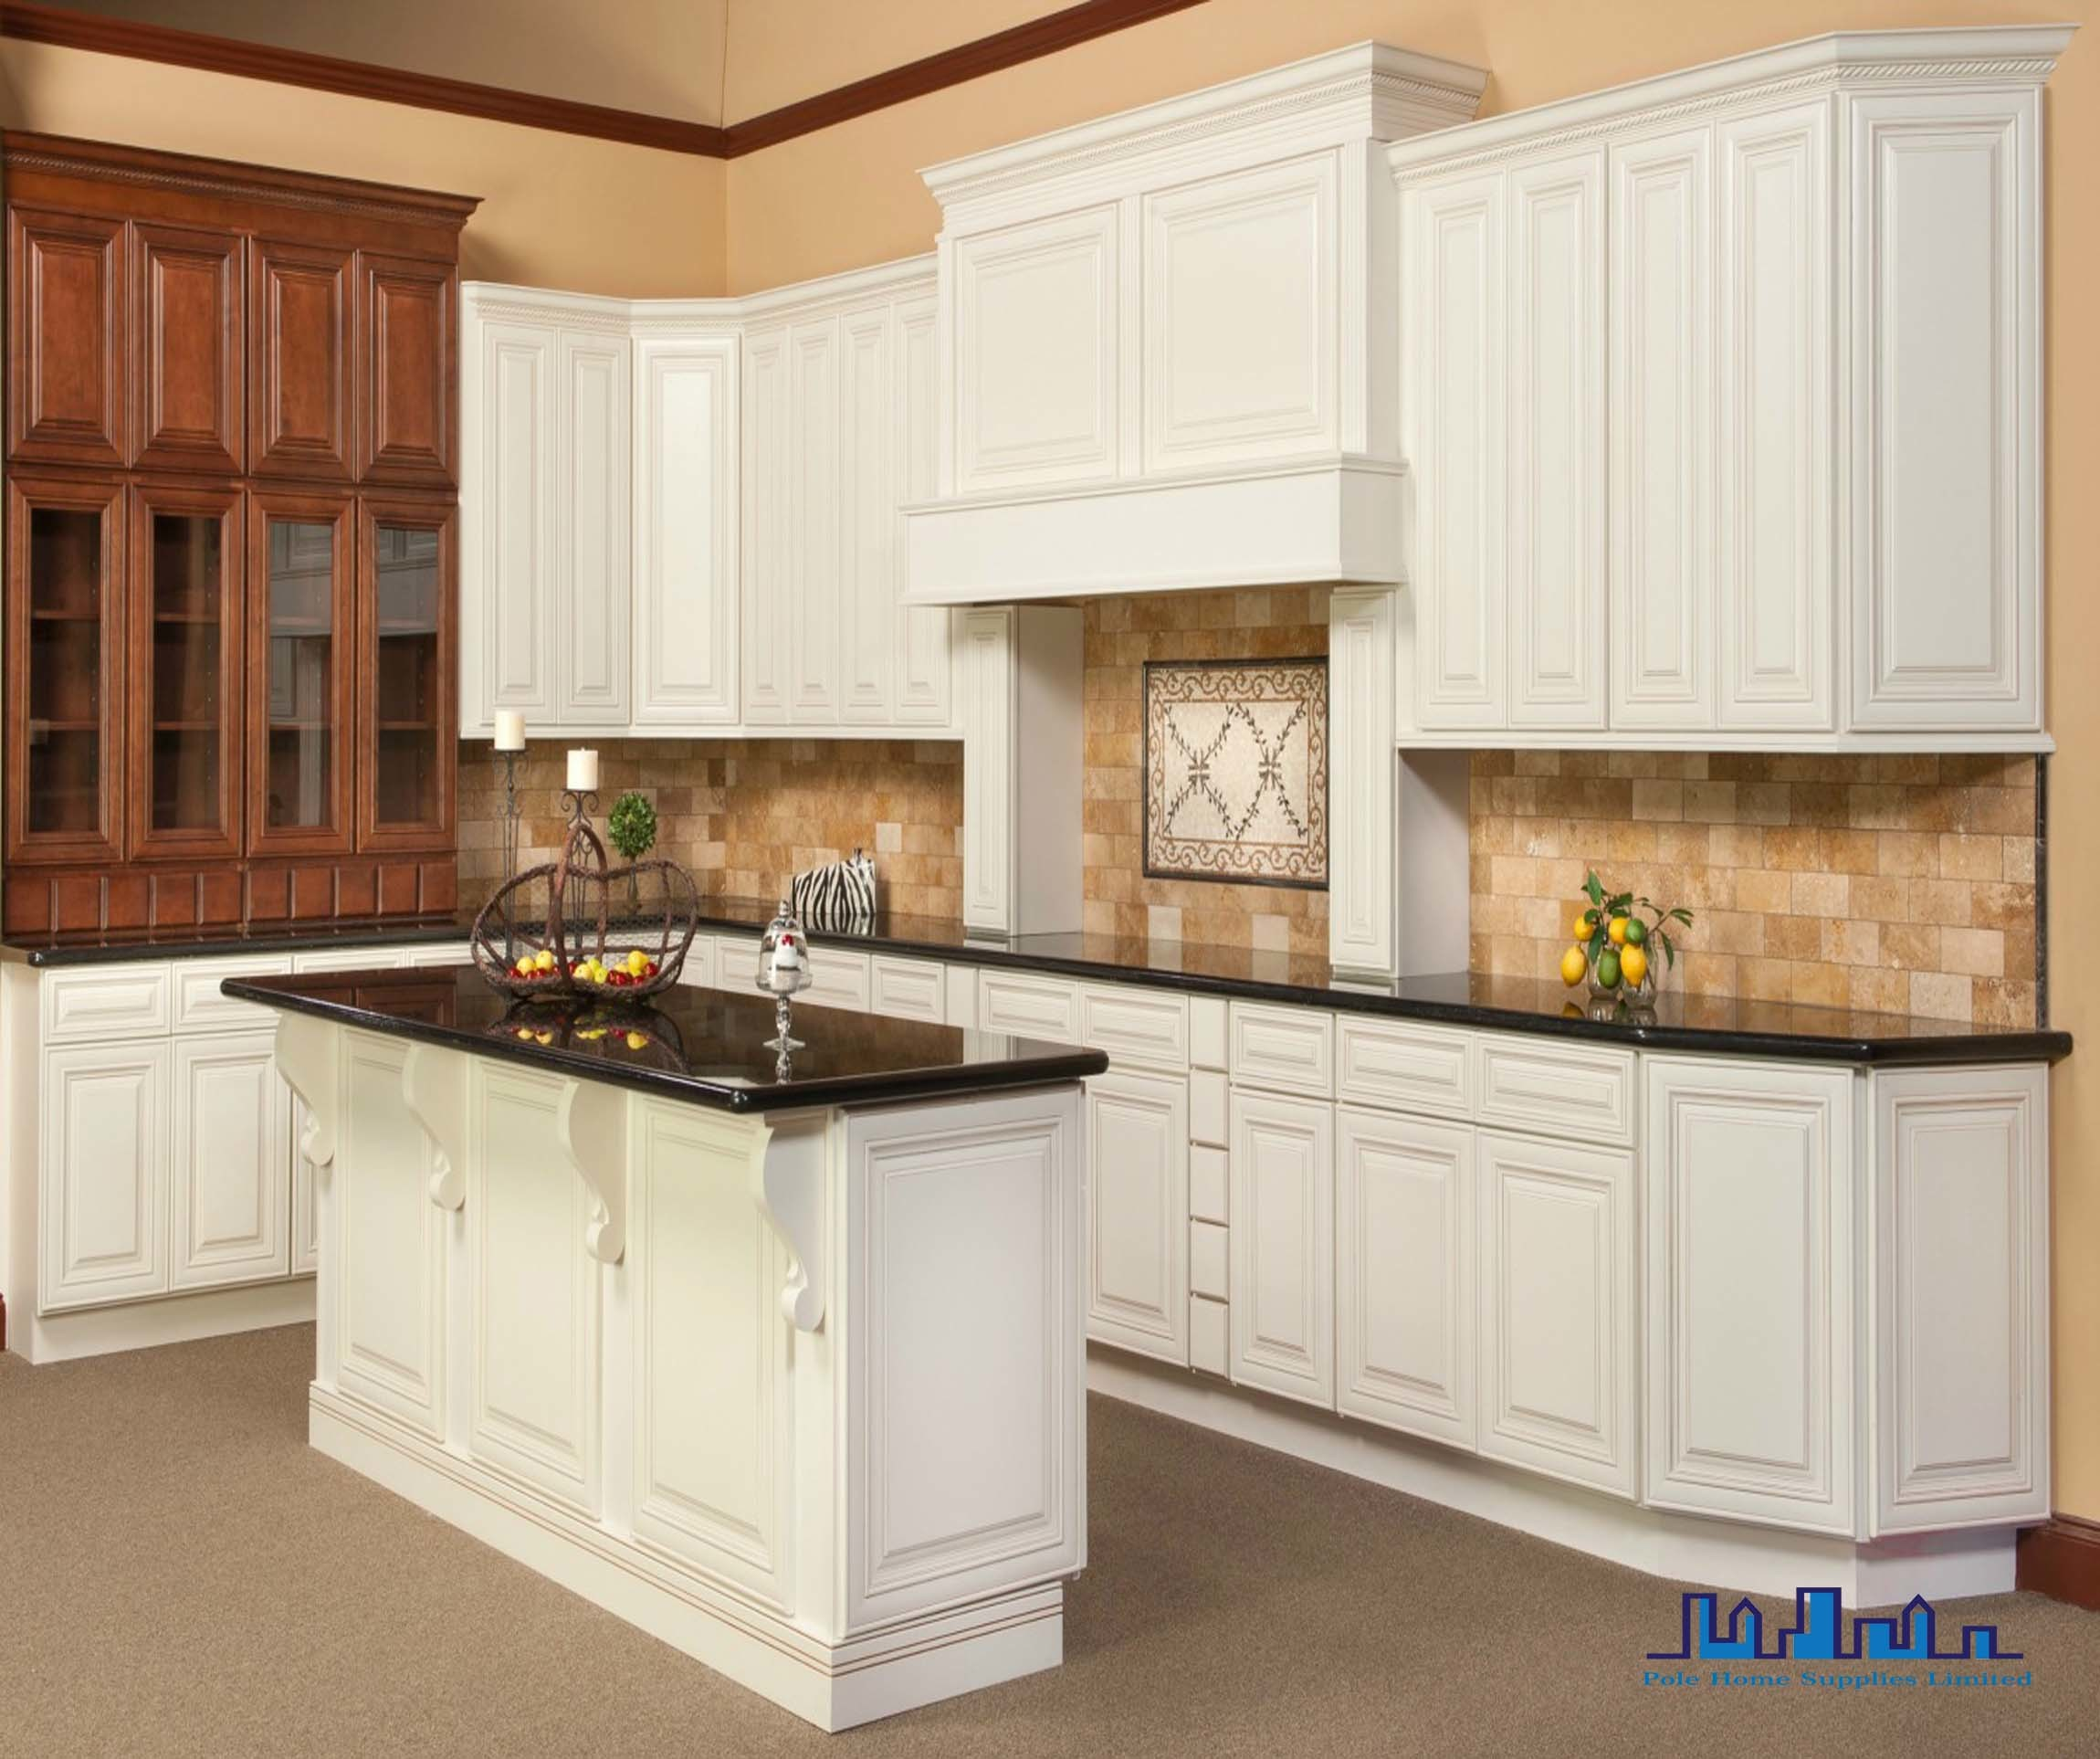 Dakota White Rta Kitchen Cabinets: China Pole 2016 Rta Antique White Solid Kitchen Cabinets